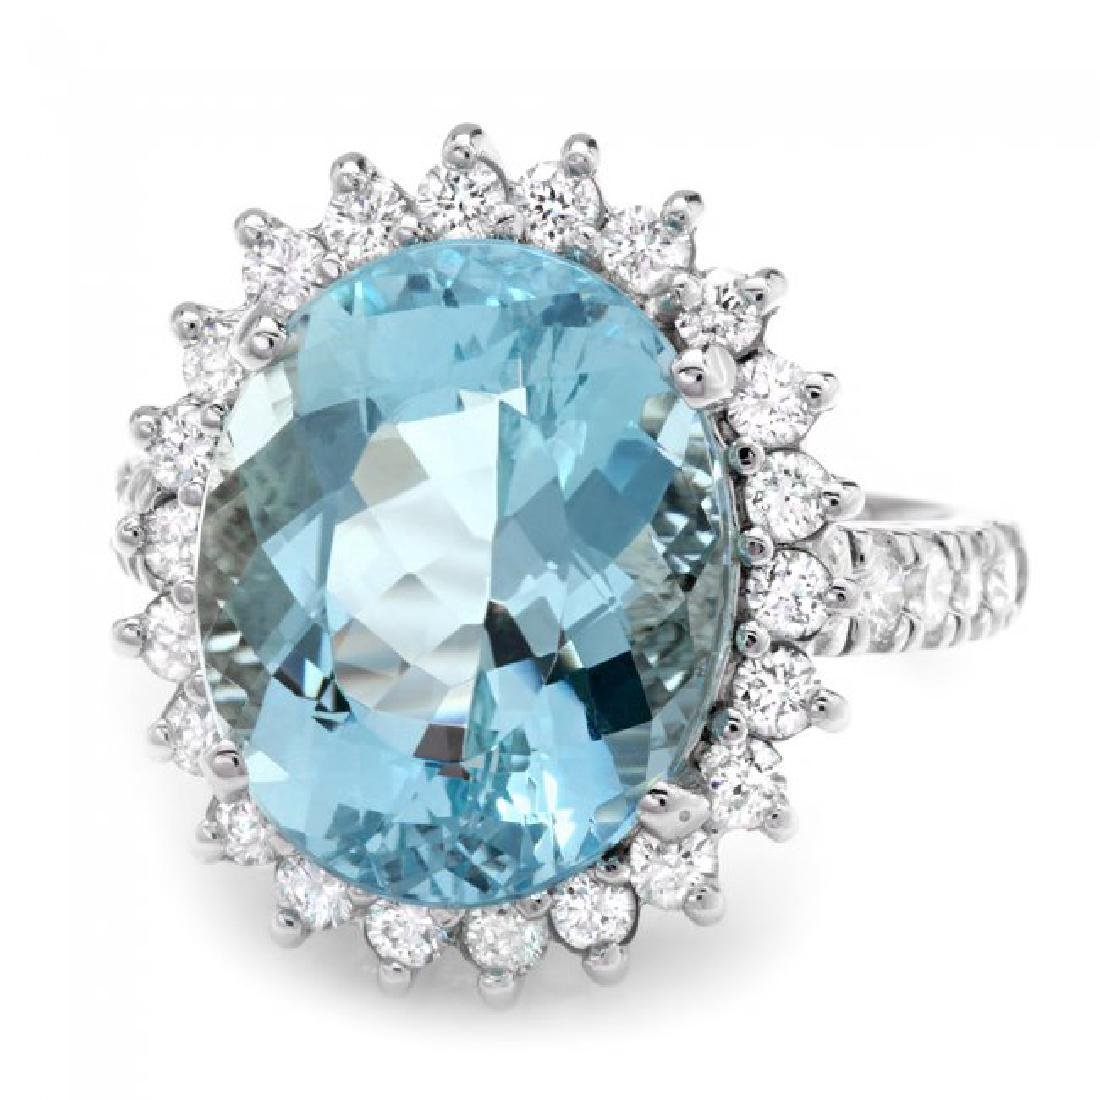 14k Gold 7.50ct Aquamarine 1.00ct Diamond Ring - 2